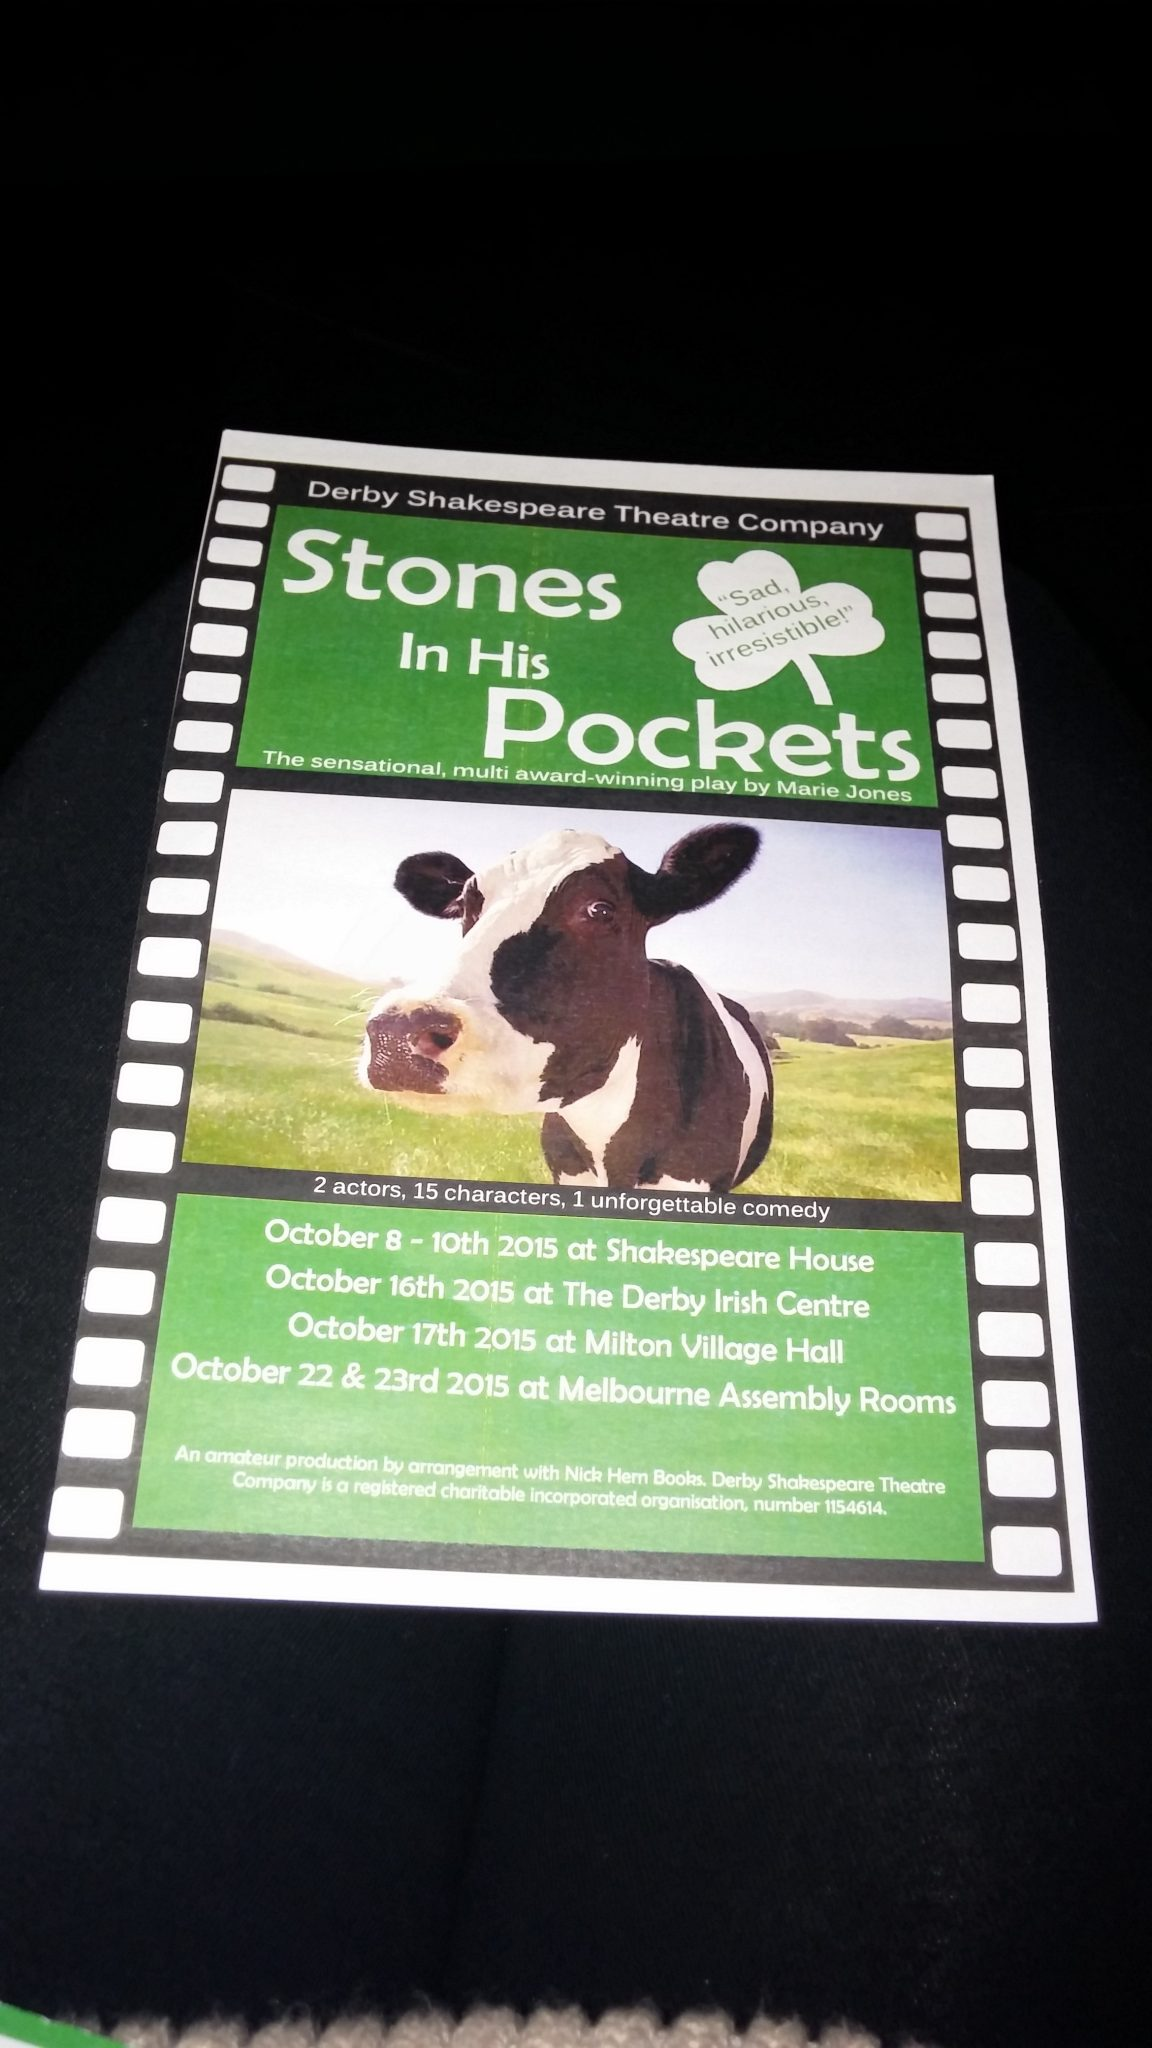 Theatre Review: Stones in his Pockets (Marie Jones); Derby Shakespeare Theatre Company